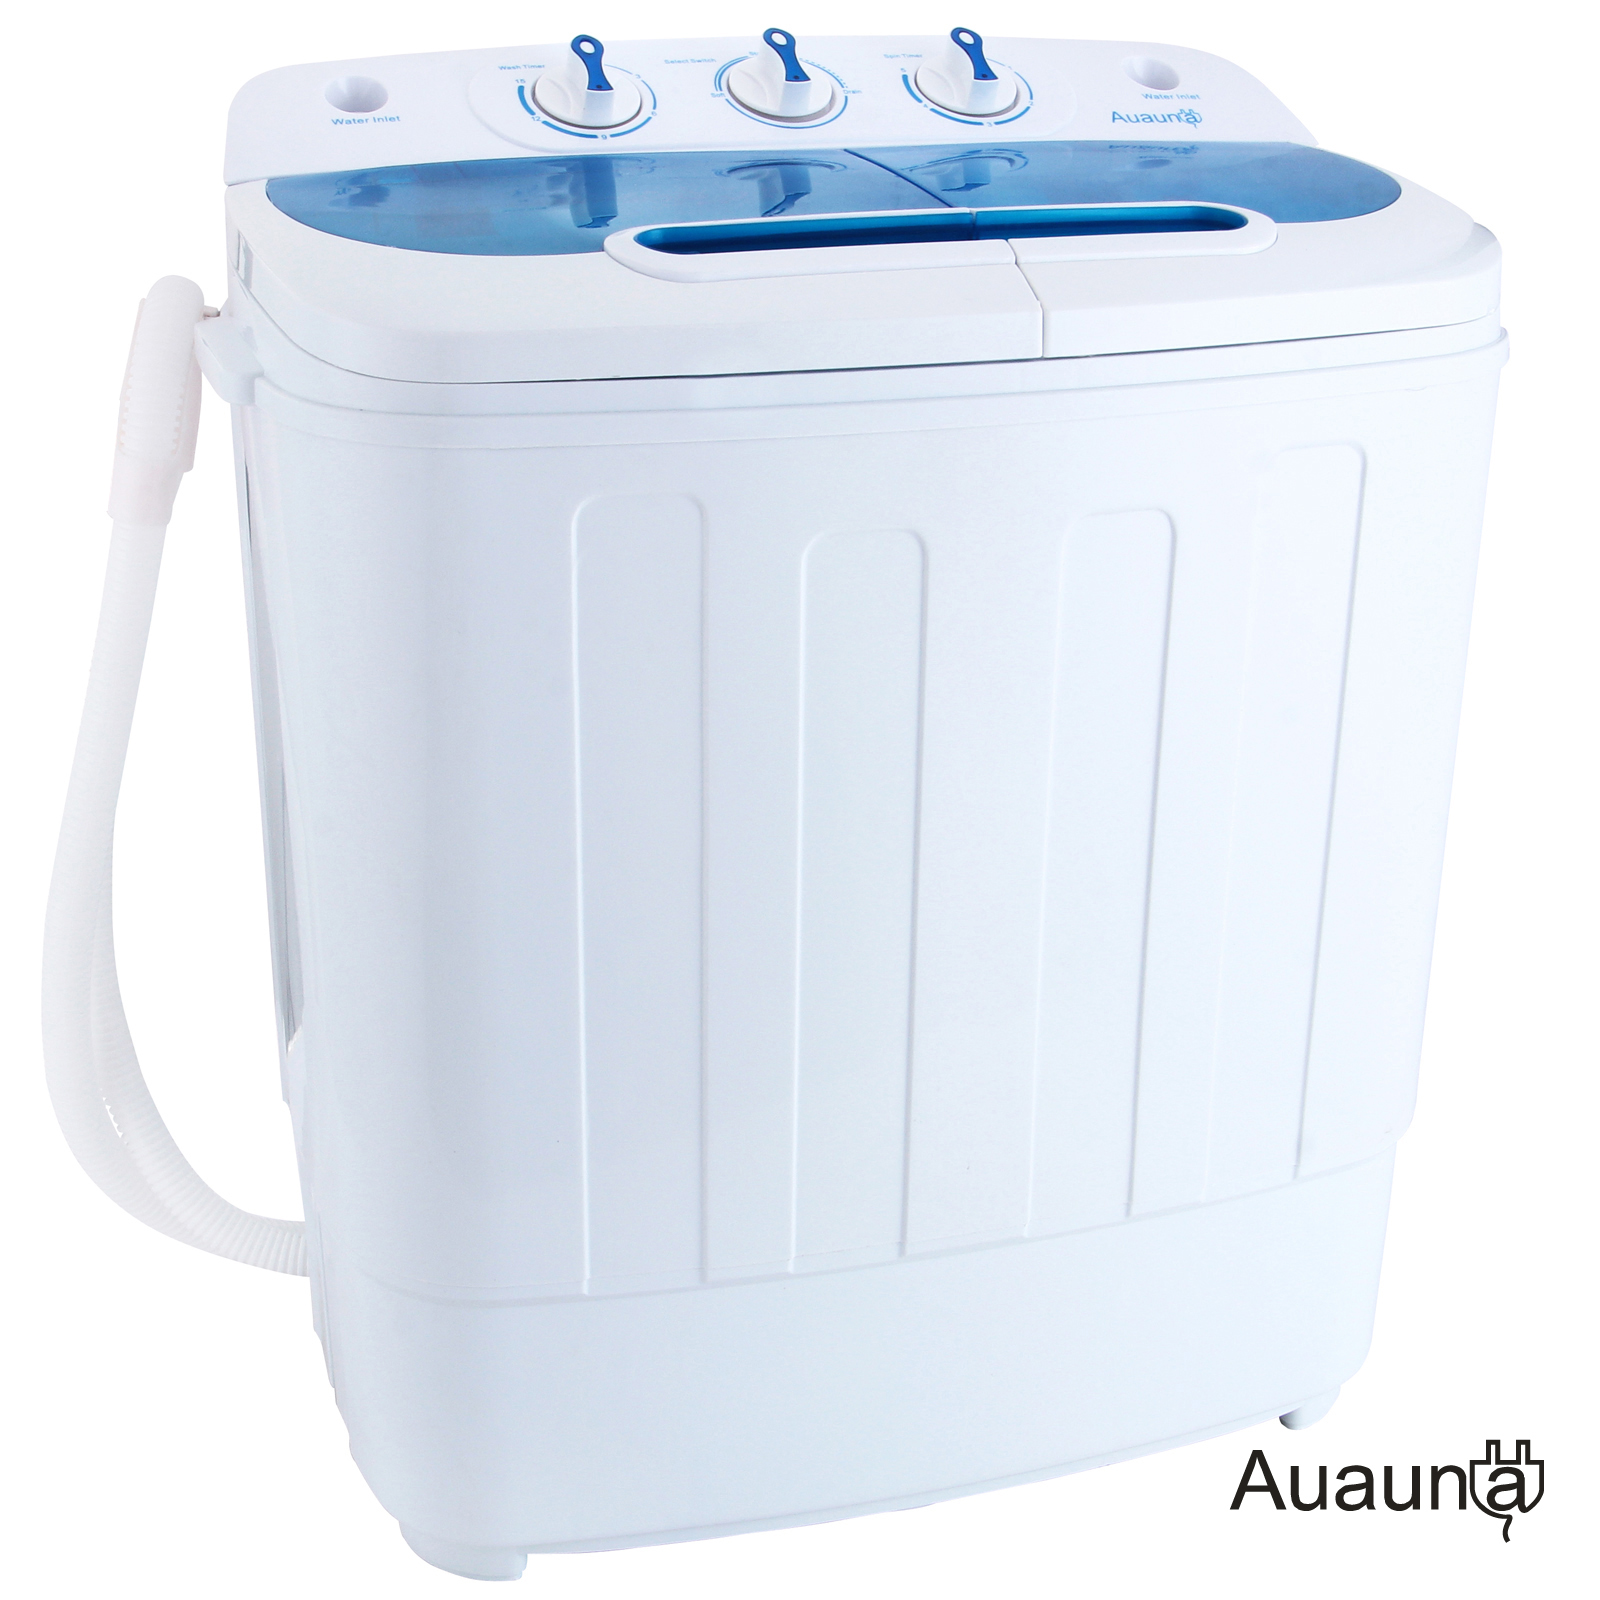 Portable Clothes Washer And Dryer ~ Portable mini lbs washing machine rv dorm compact